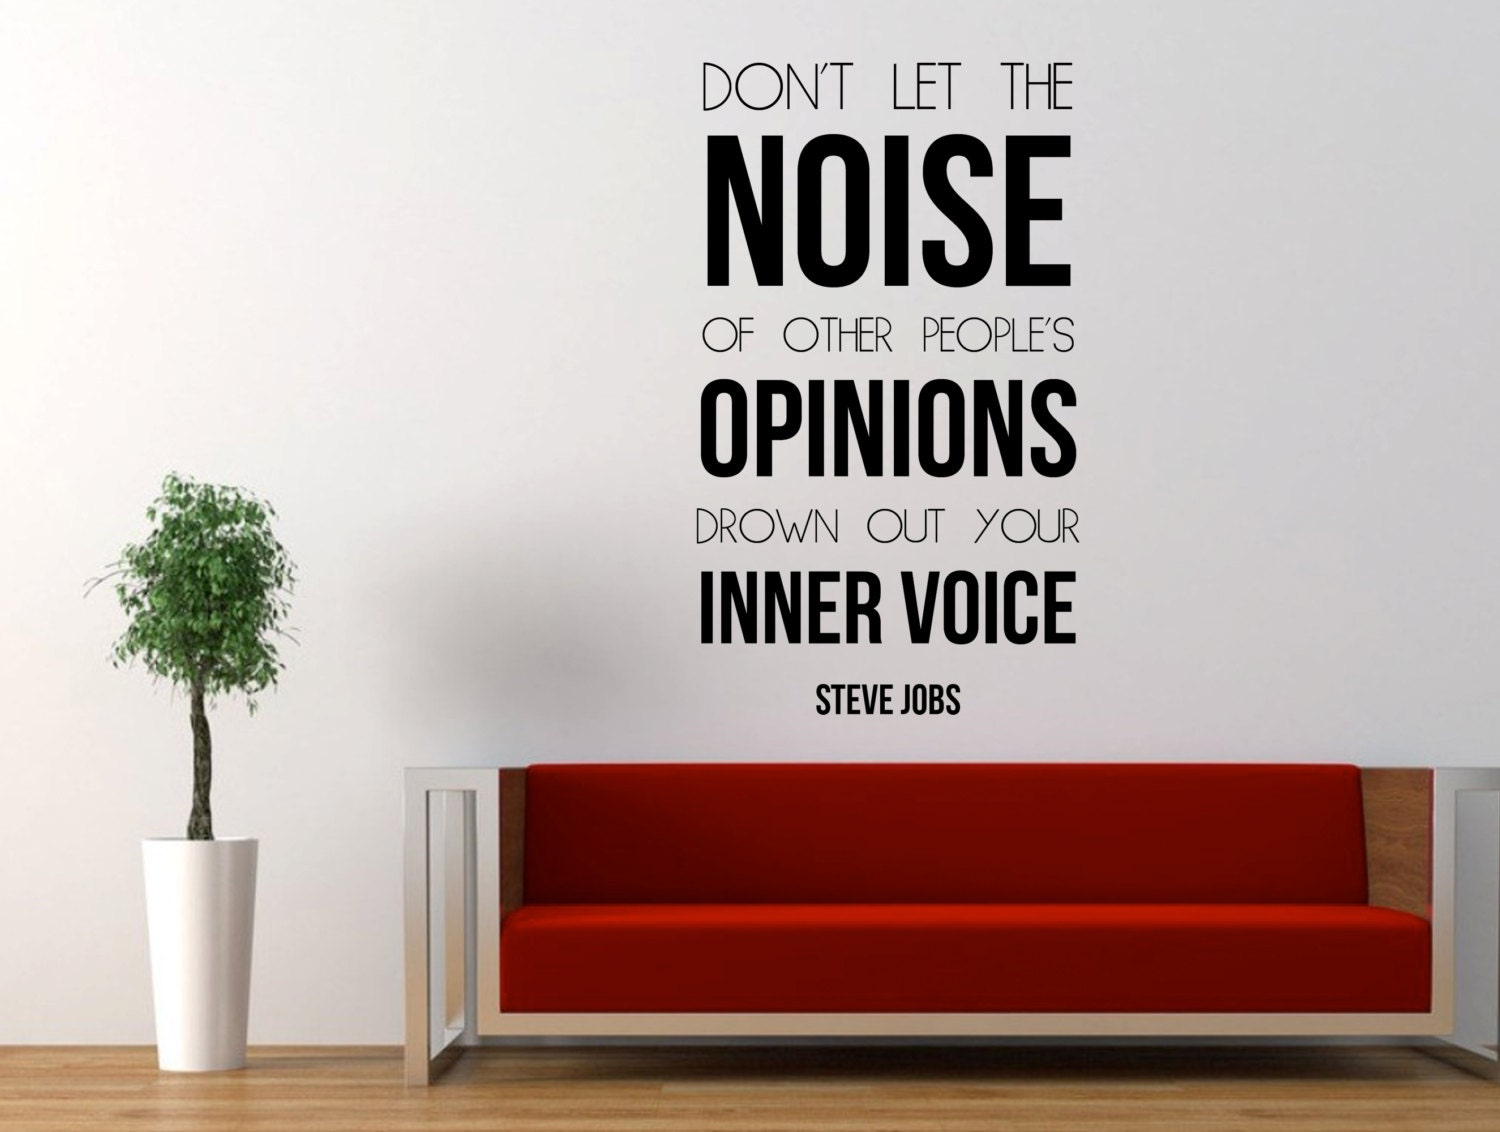 Steve Jobs Quote Don't Let the Noise of Others Opinions